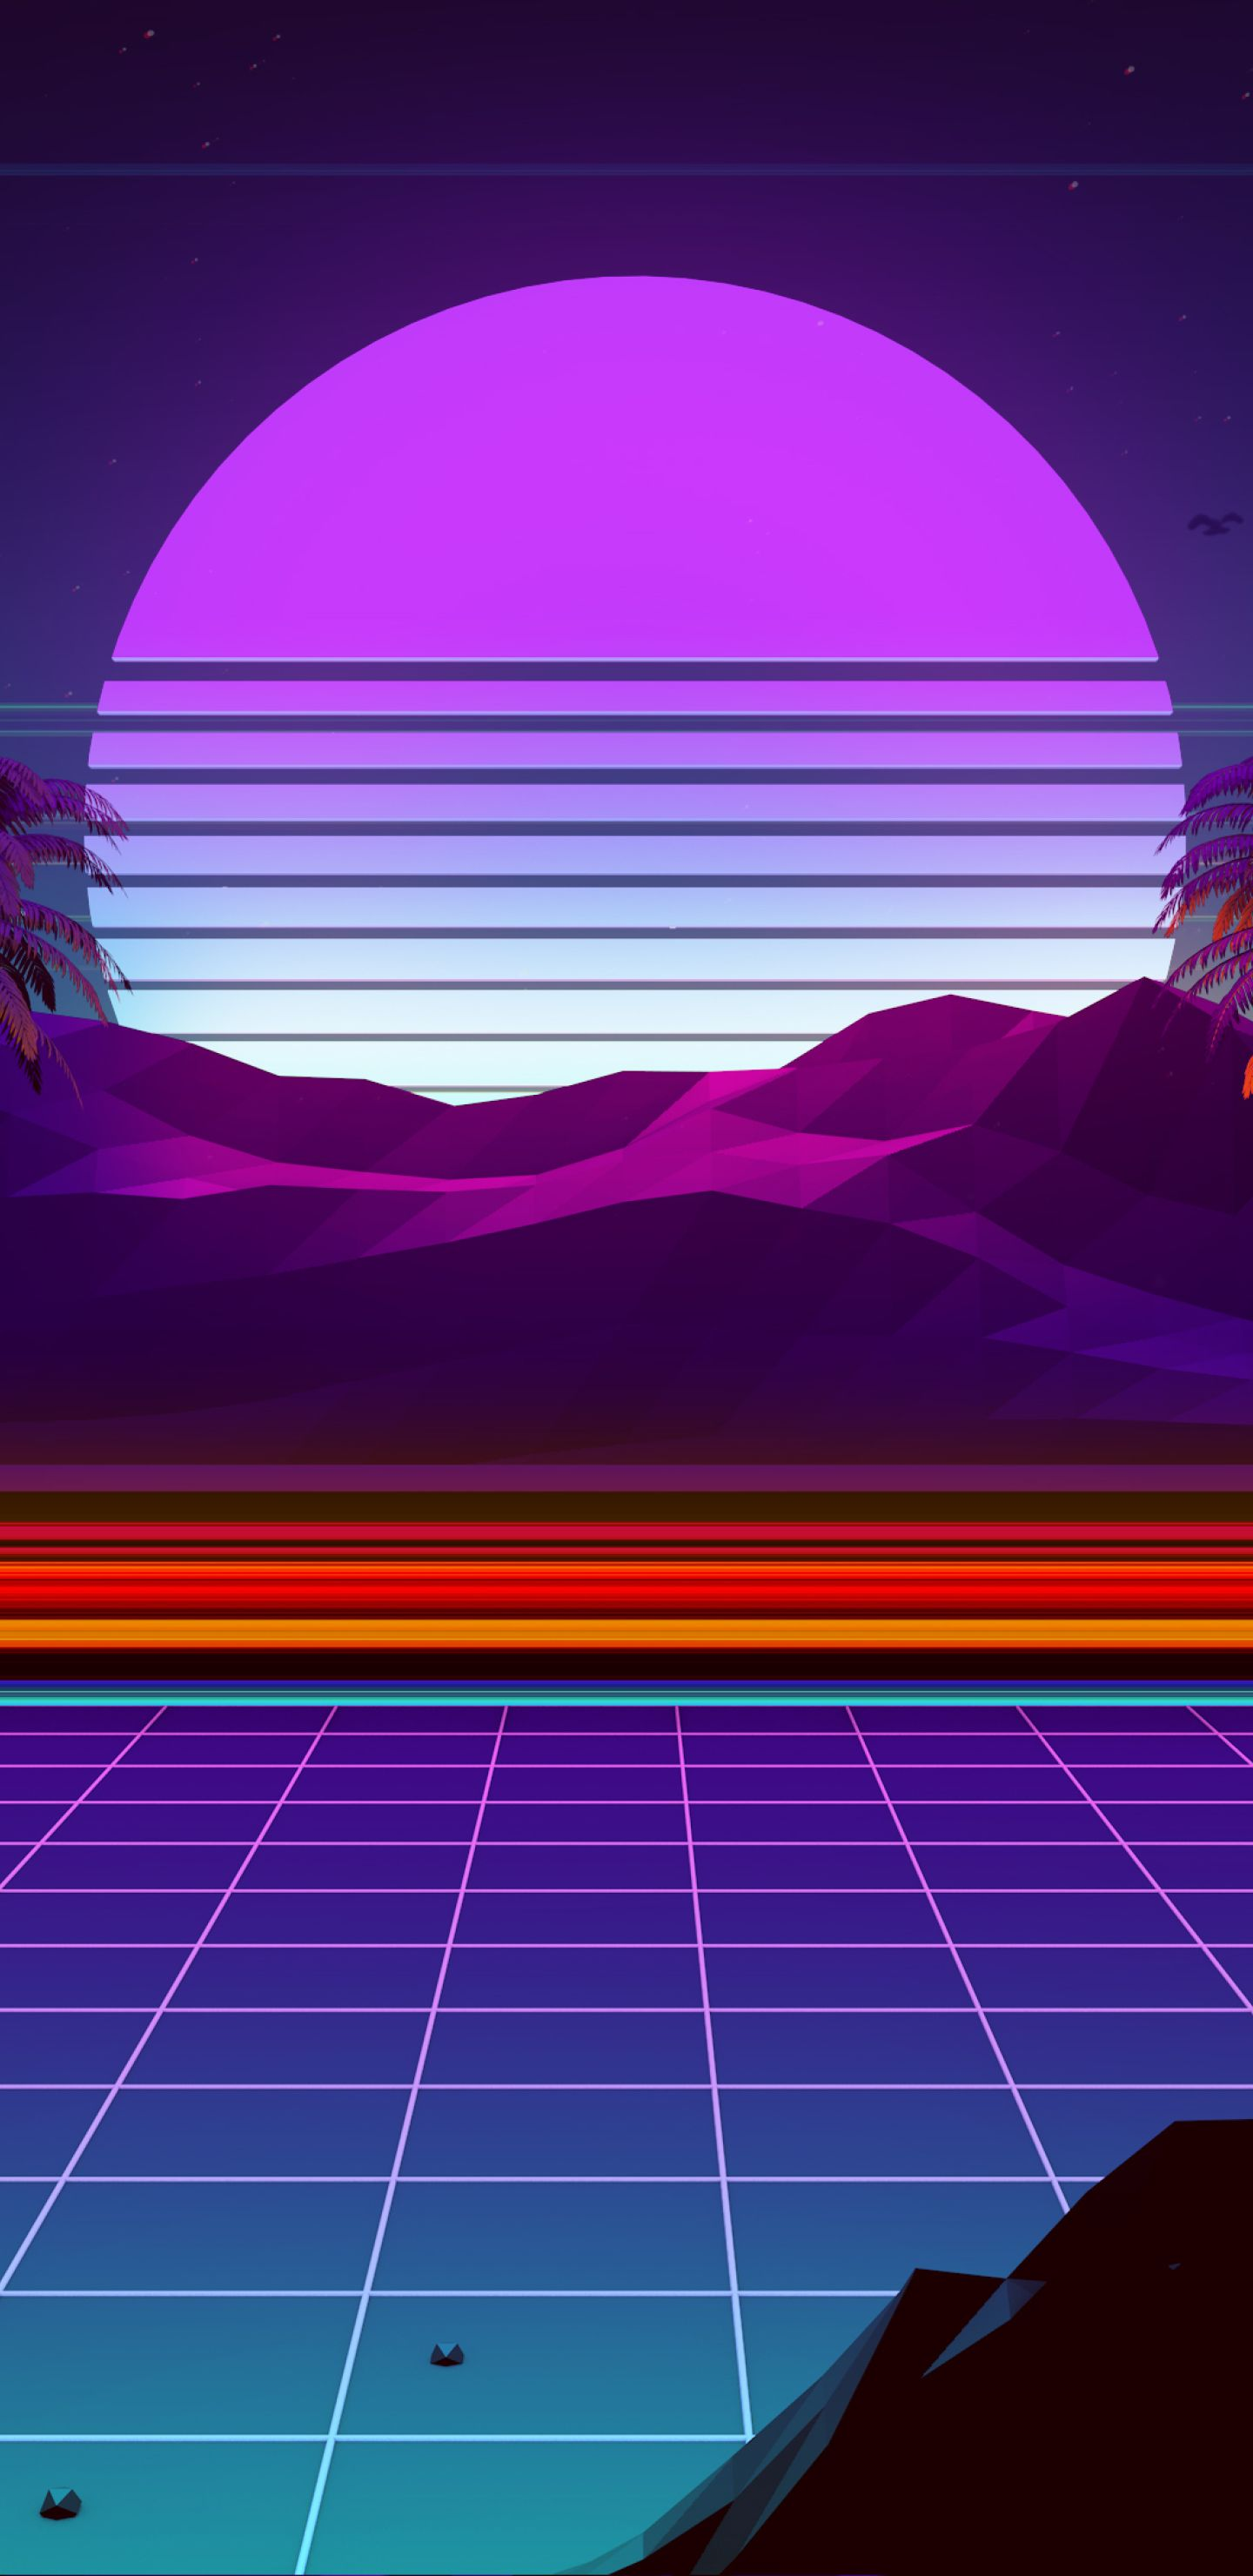 1440x2960 Synthwave And Retrowave Samsung Galaxy Note 9,8, S9,S8